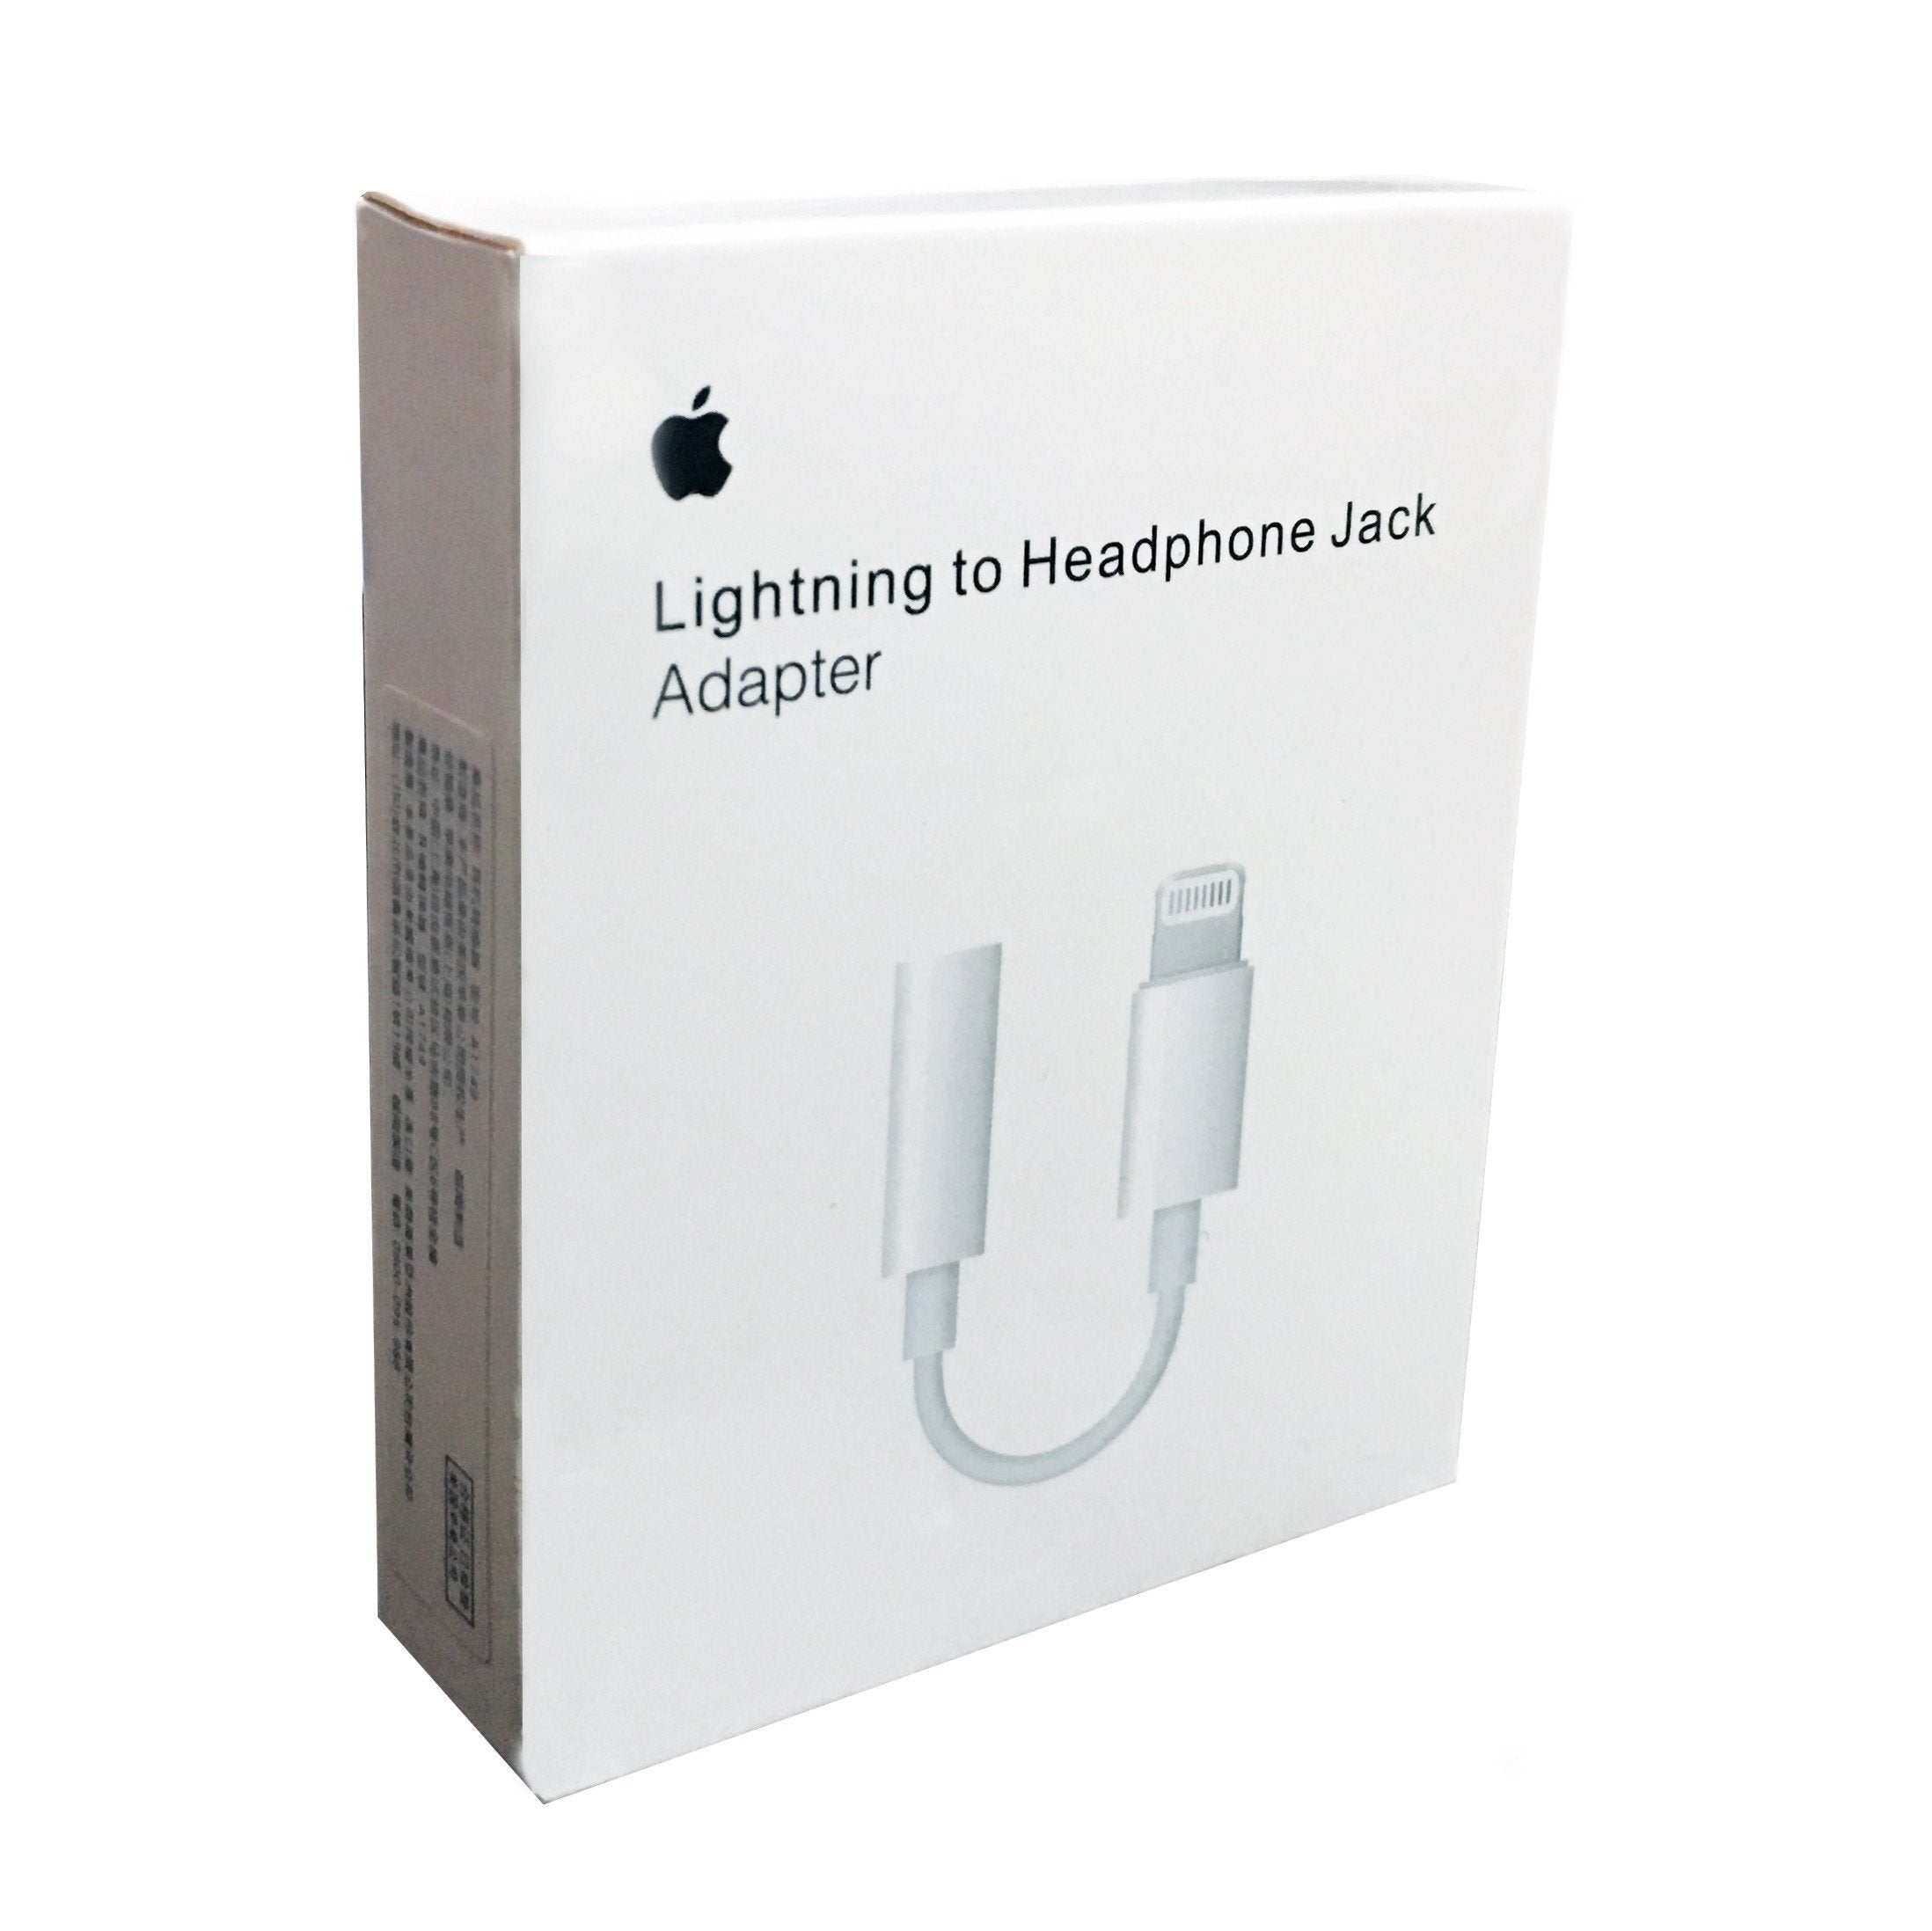 Lightning to 3.5mm Headphone Jack Adaptor